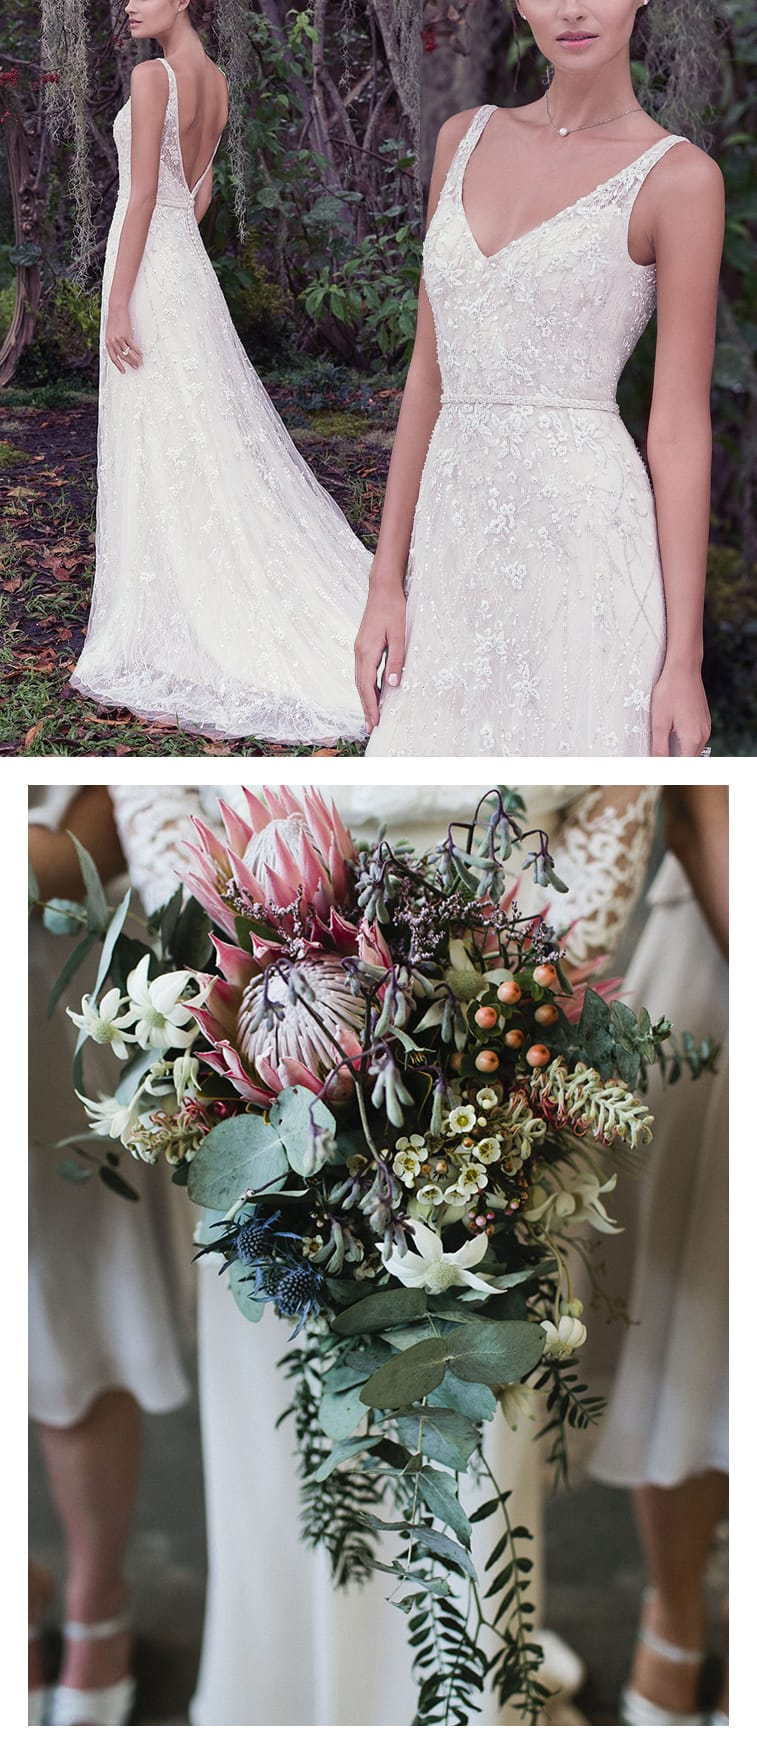 9 Boho Bouquets For Your Eclectic Wedding Gown - Lovely Jorie wedding dress by Maggie Sottero paired with a unique cascade bouquet full of succelents. Photo: It's Beautiful Here | Bouquet: Loose Leaf